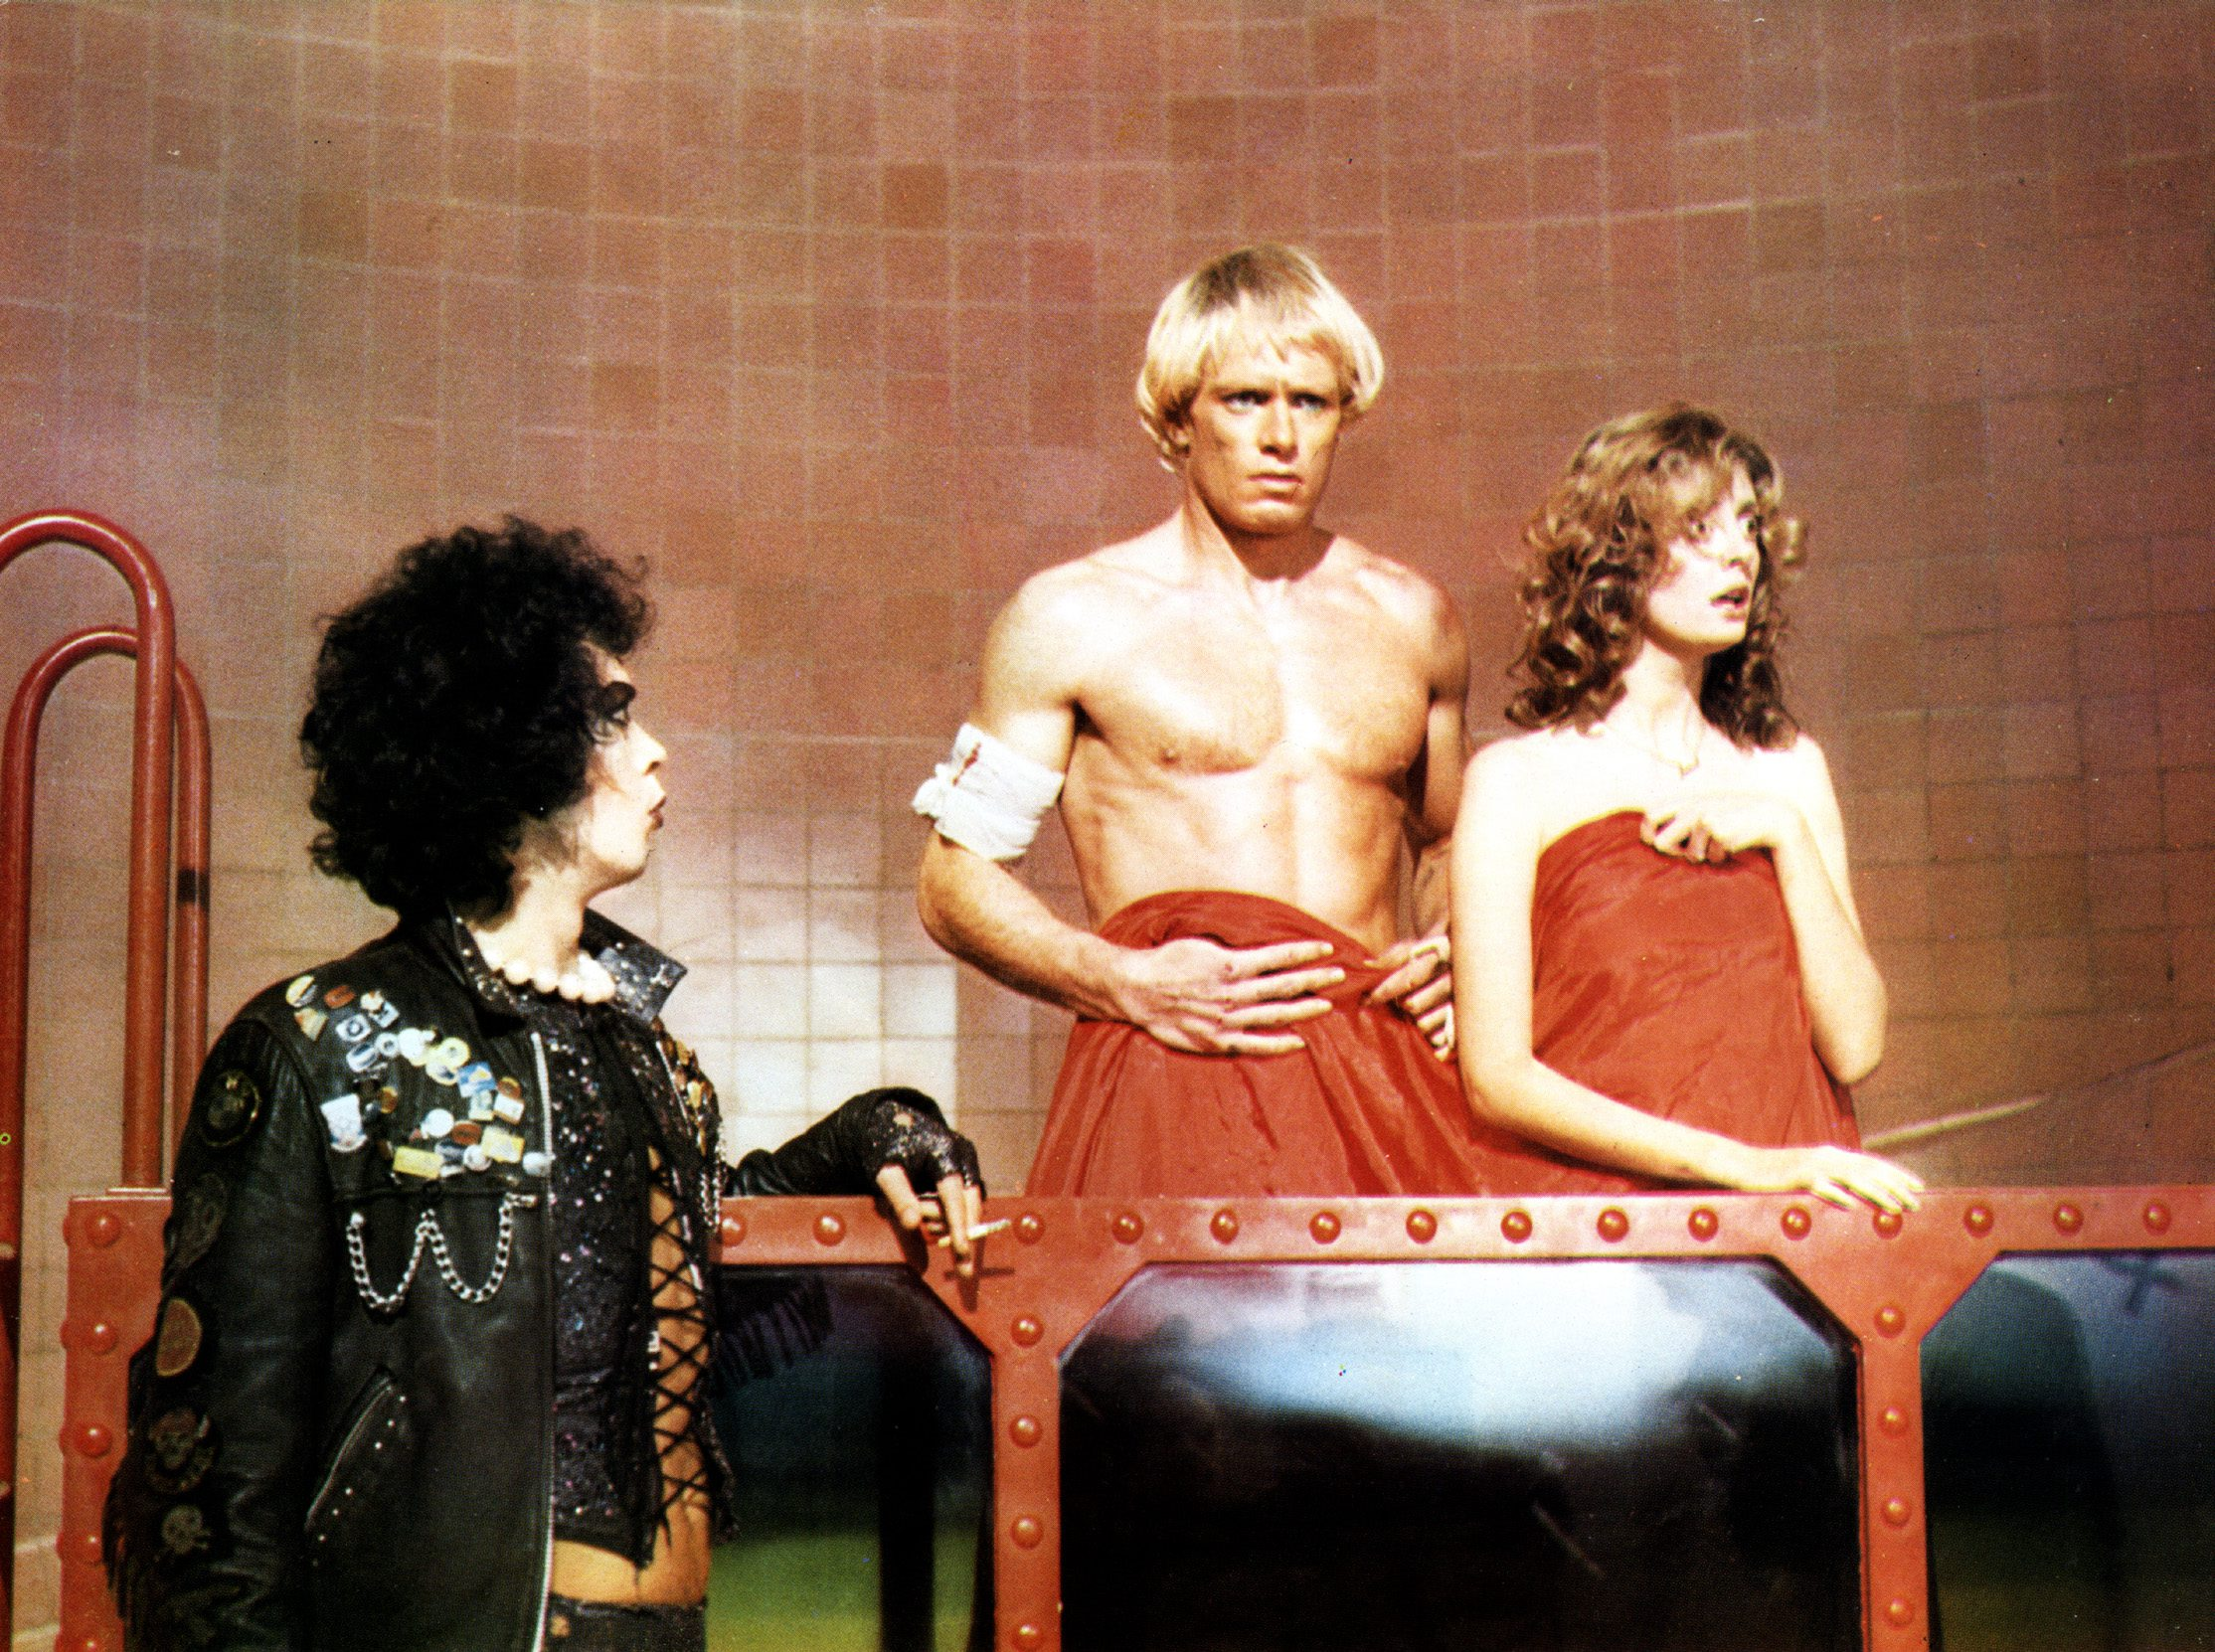 THE ROCKY HORROR PICTURE SHOW [BR / US 1975]  TIM CURRY, PETER HINWOOD, SUSAN SARANDON     Date: 1975 (Mary Evans Picture Lib